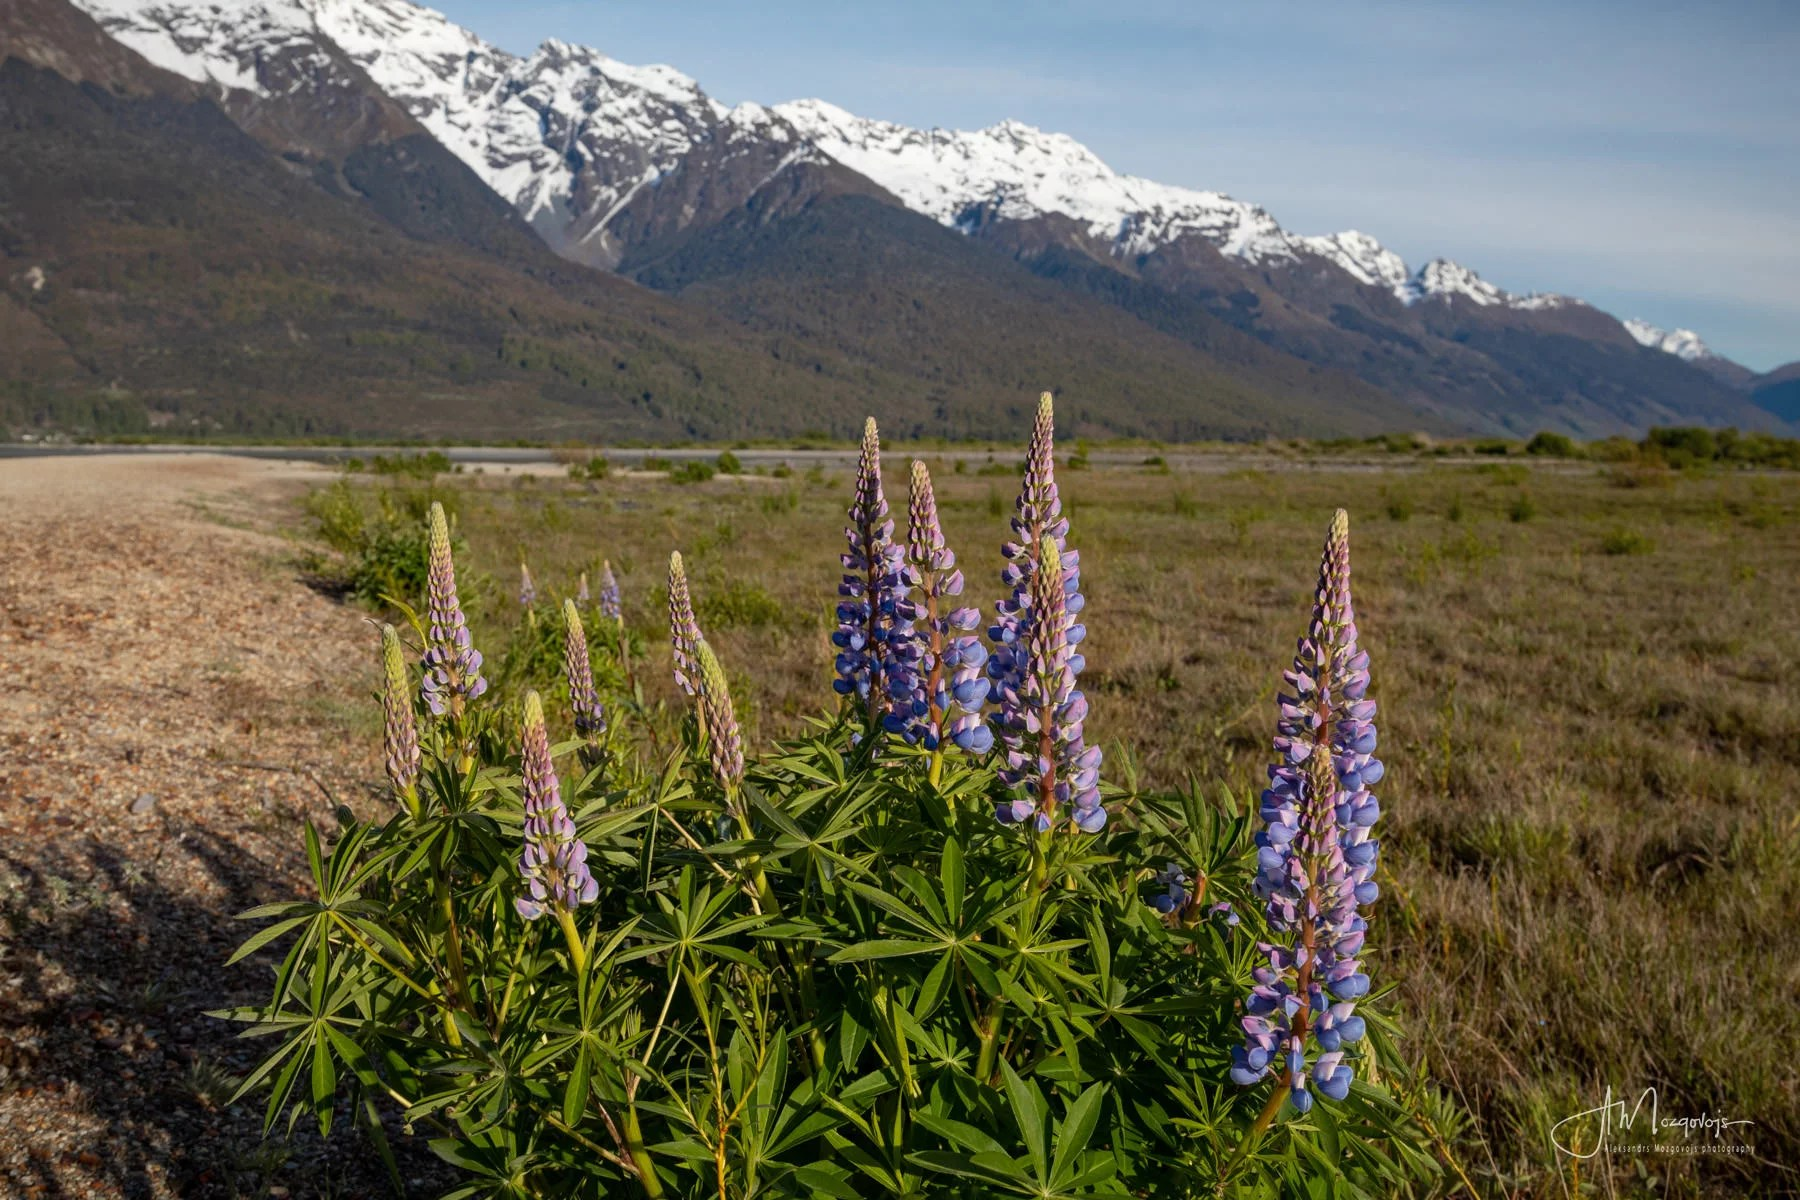 Wild Flowers in Glenorchy, New Zealand